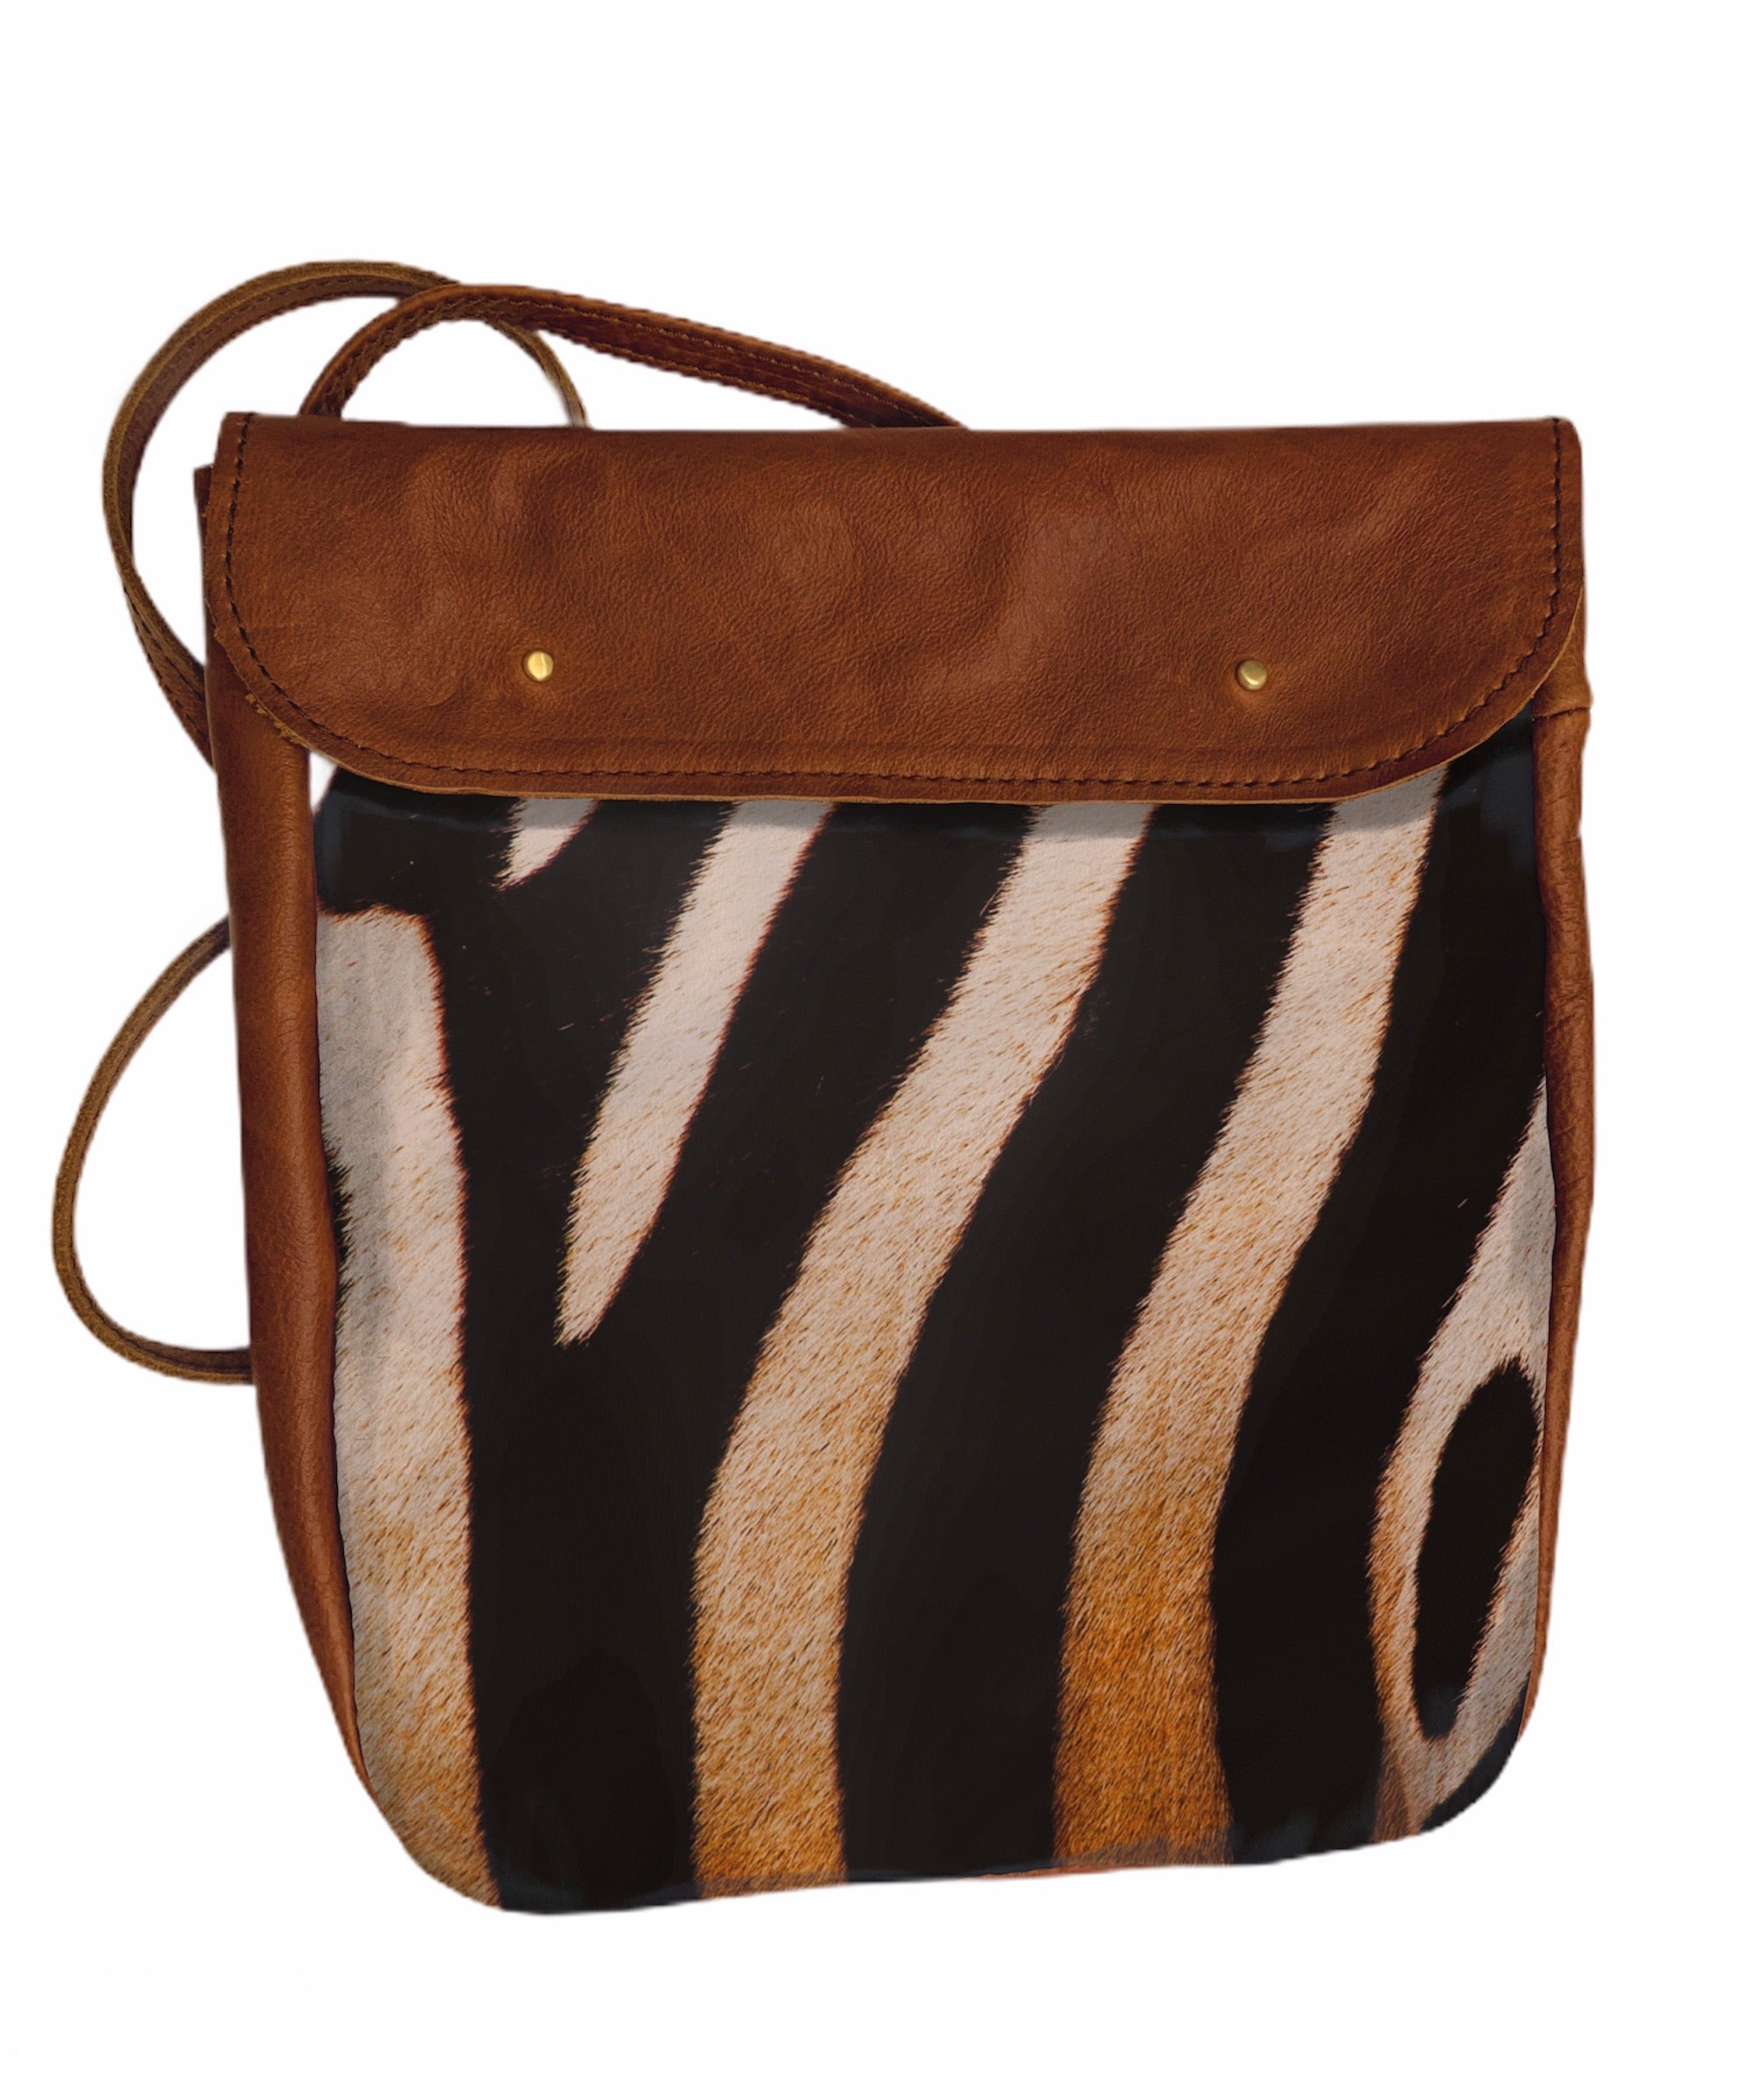 Crossover bag Zebra print